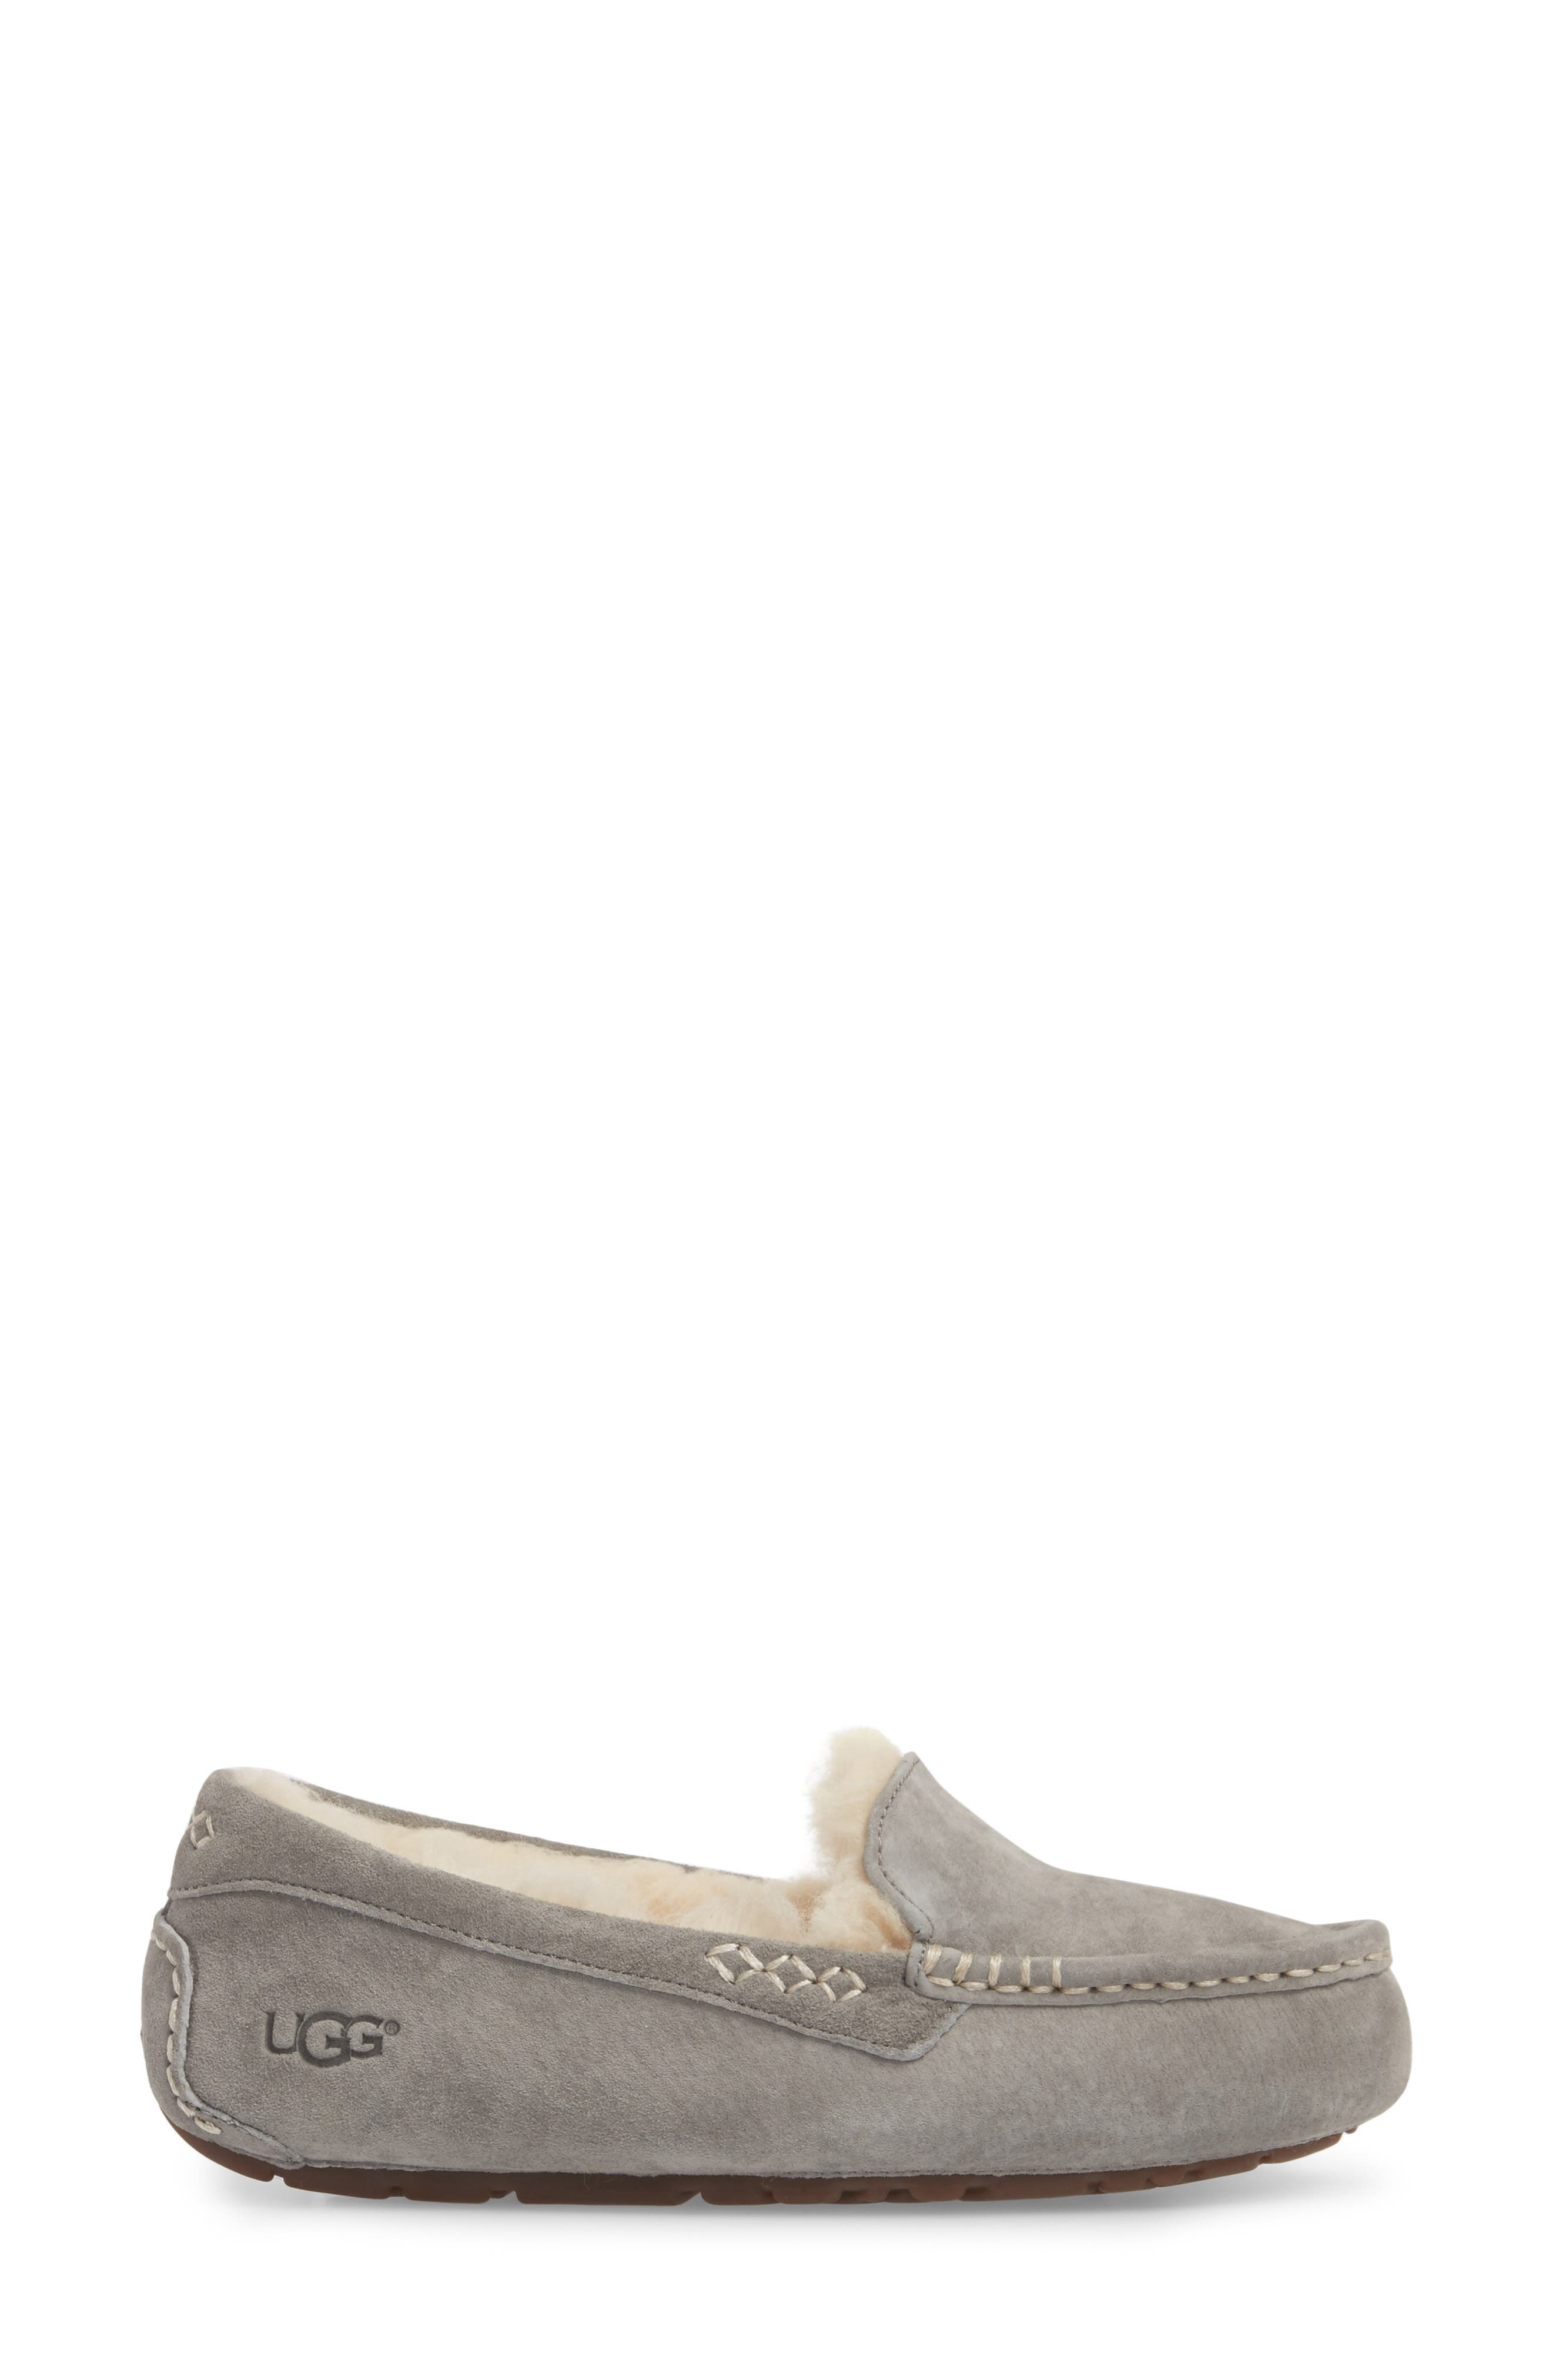 UGG<SUP>®</SUP>, Ansley Water Resistant Slipper, Alternate thumbnail 3, color, LIGHT GREY